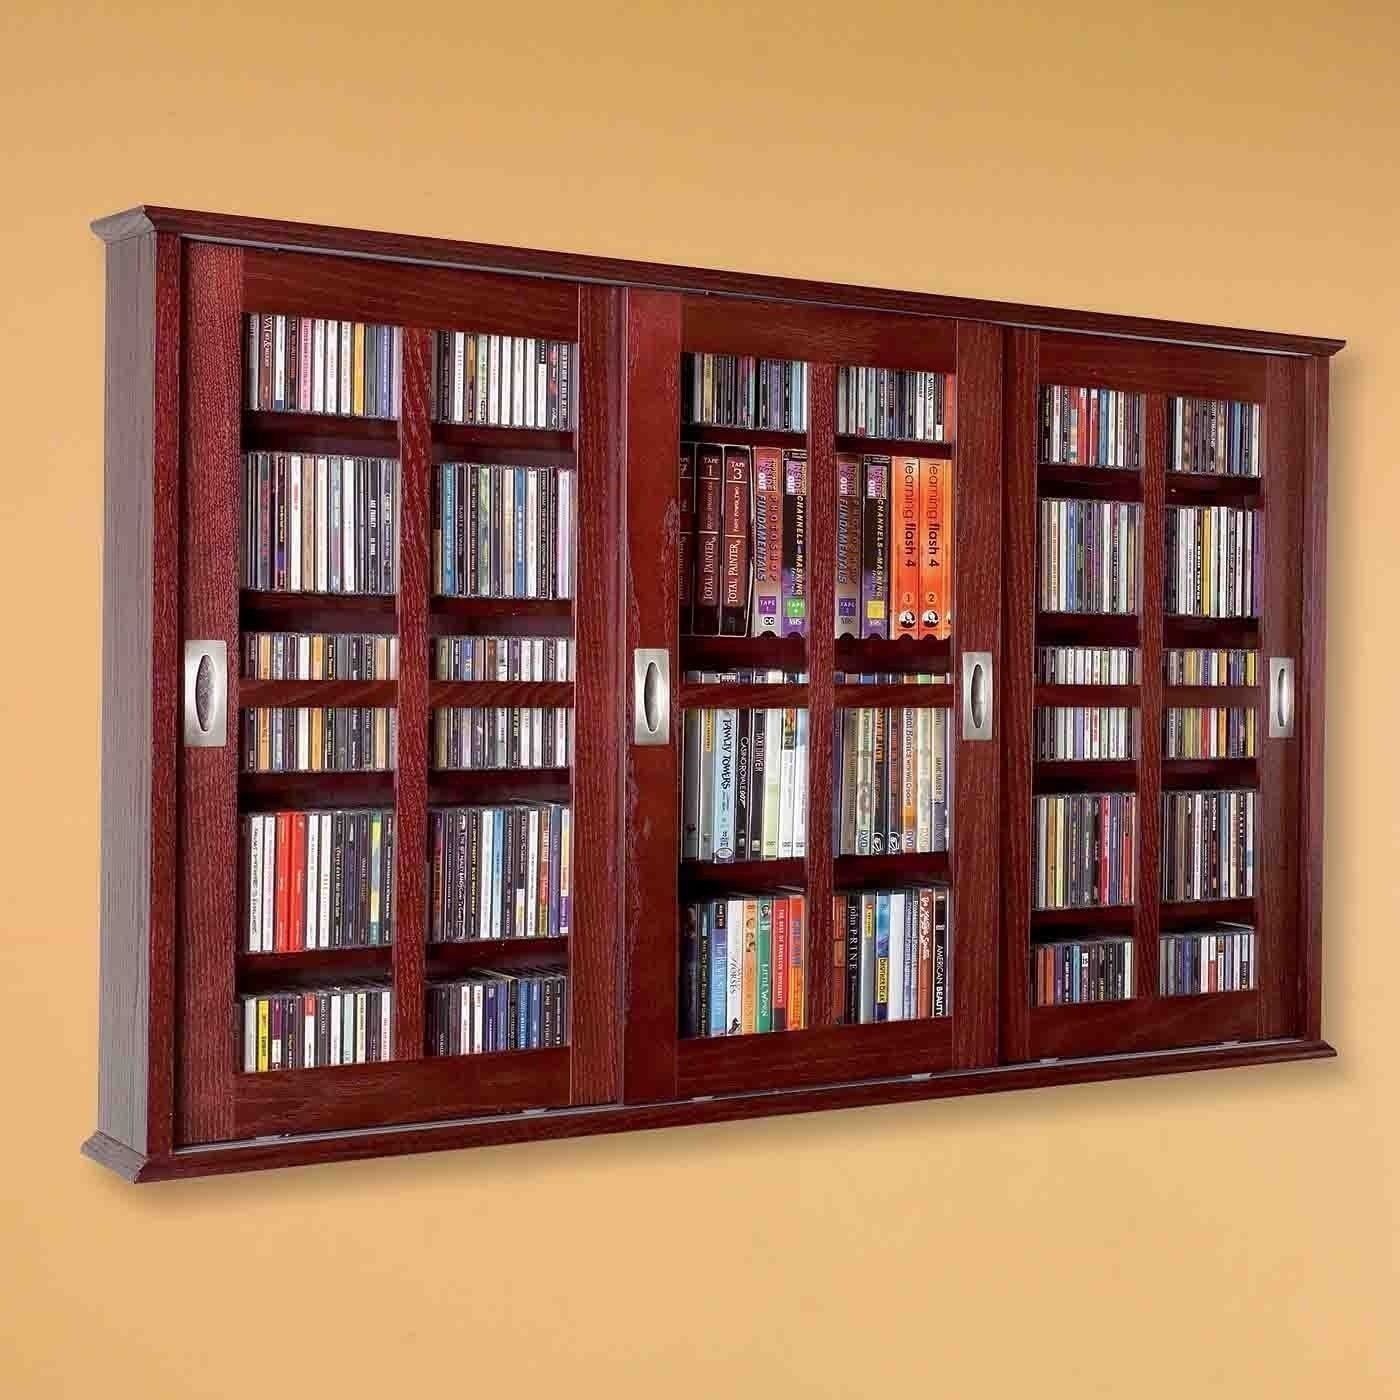 New Dvd Cd Media Storage Wall Cabinet Glass Doors Wood: in wall dvd storage